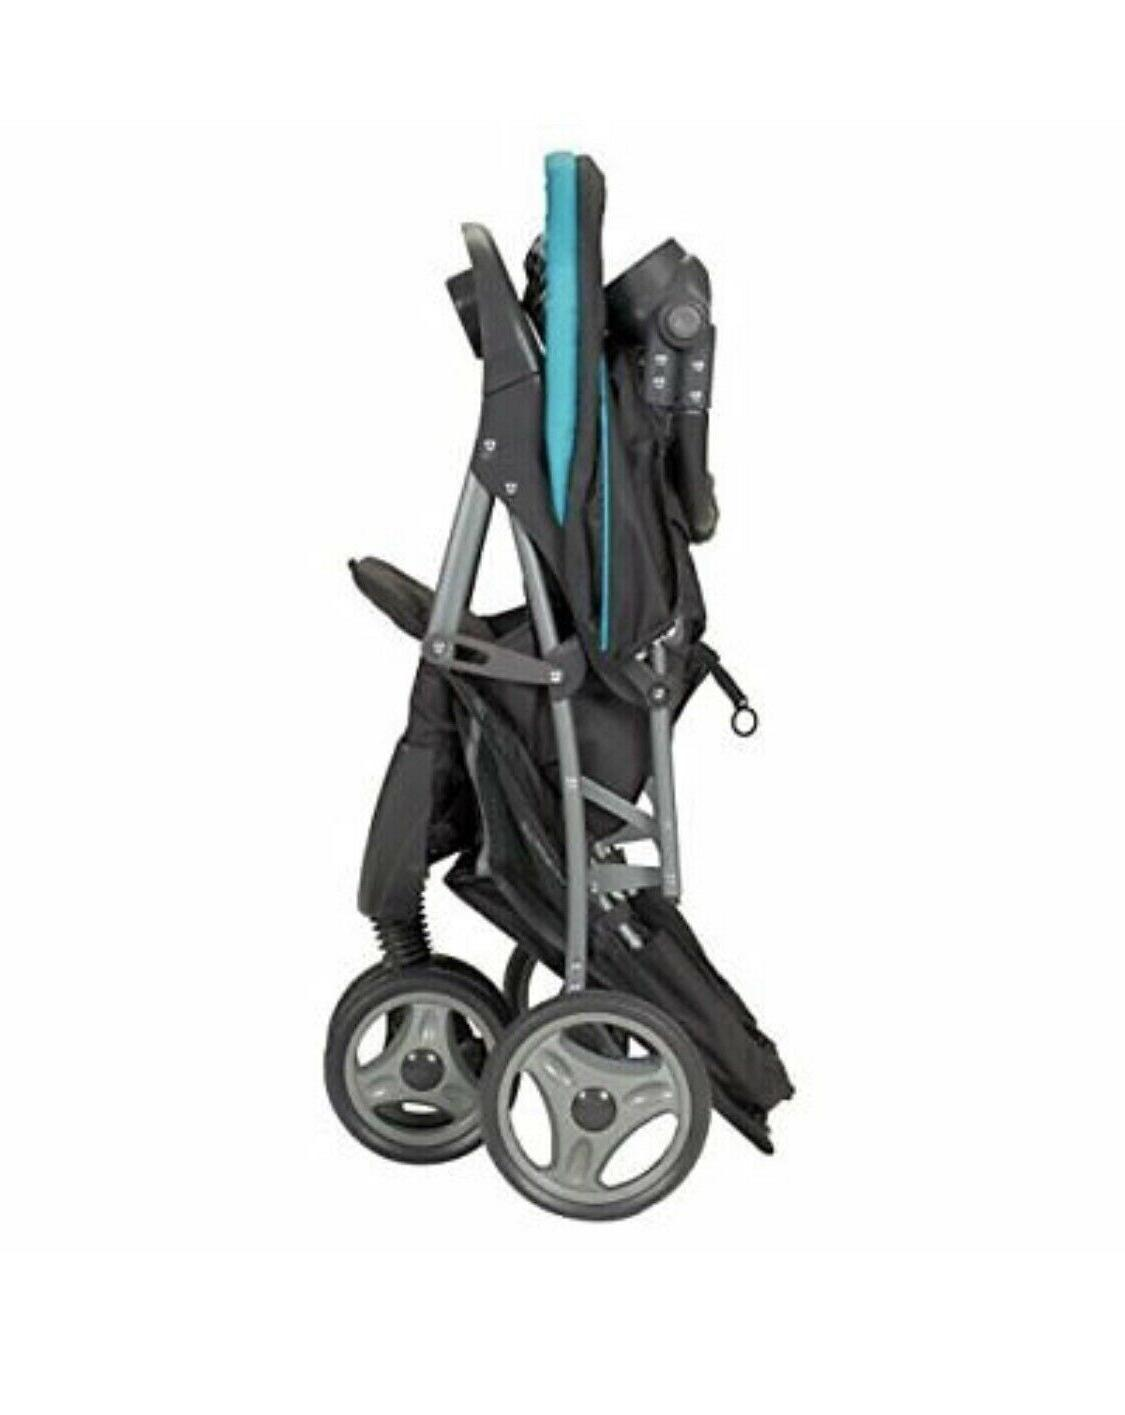 5 Travel Tooth Trolley Stroller